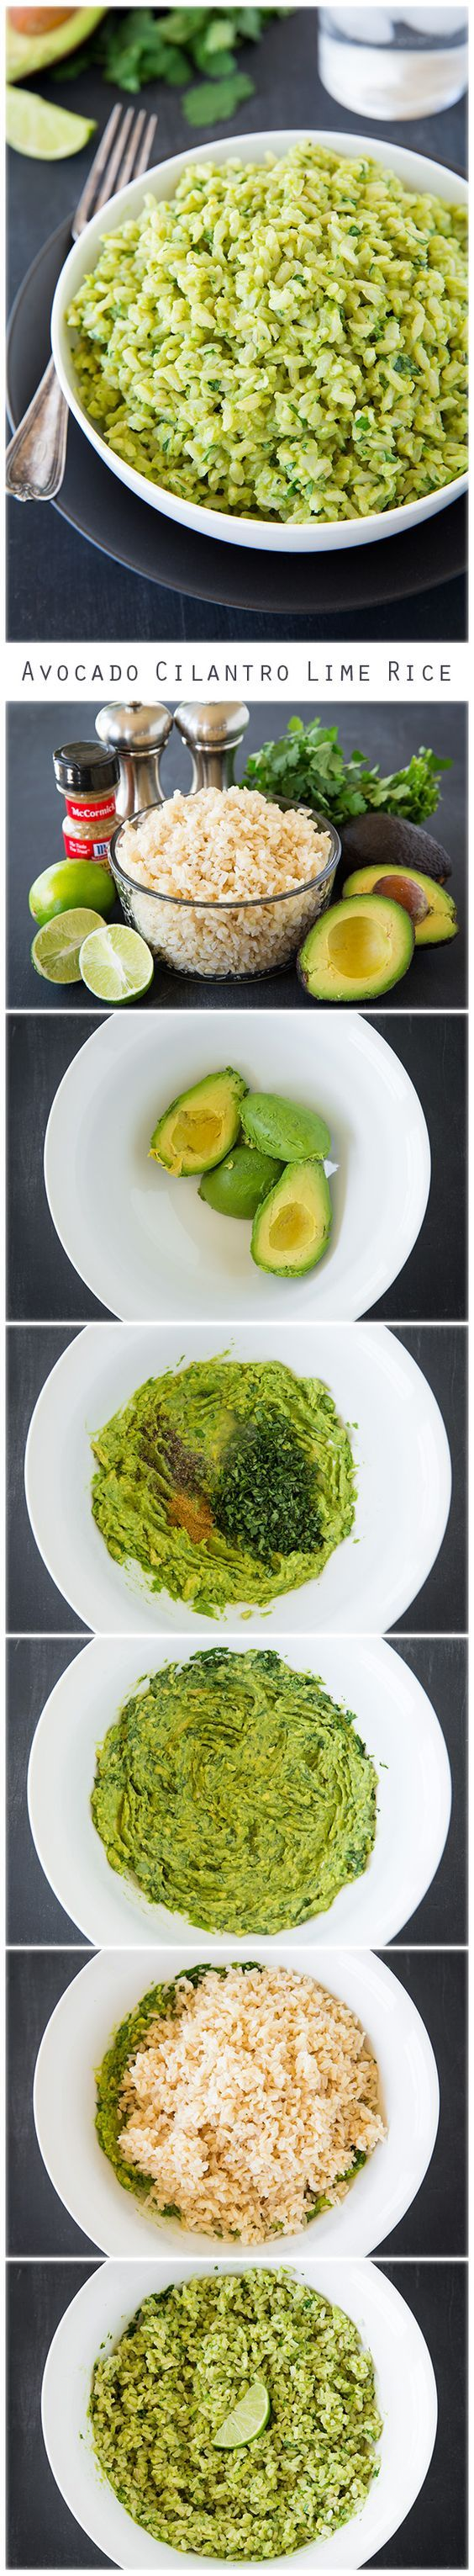 Avocado Cilantro Lime Rice - this rice is so easy to make! It's deliciously creamy  so healthy and tastes like guacamole!